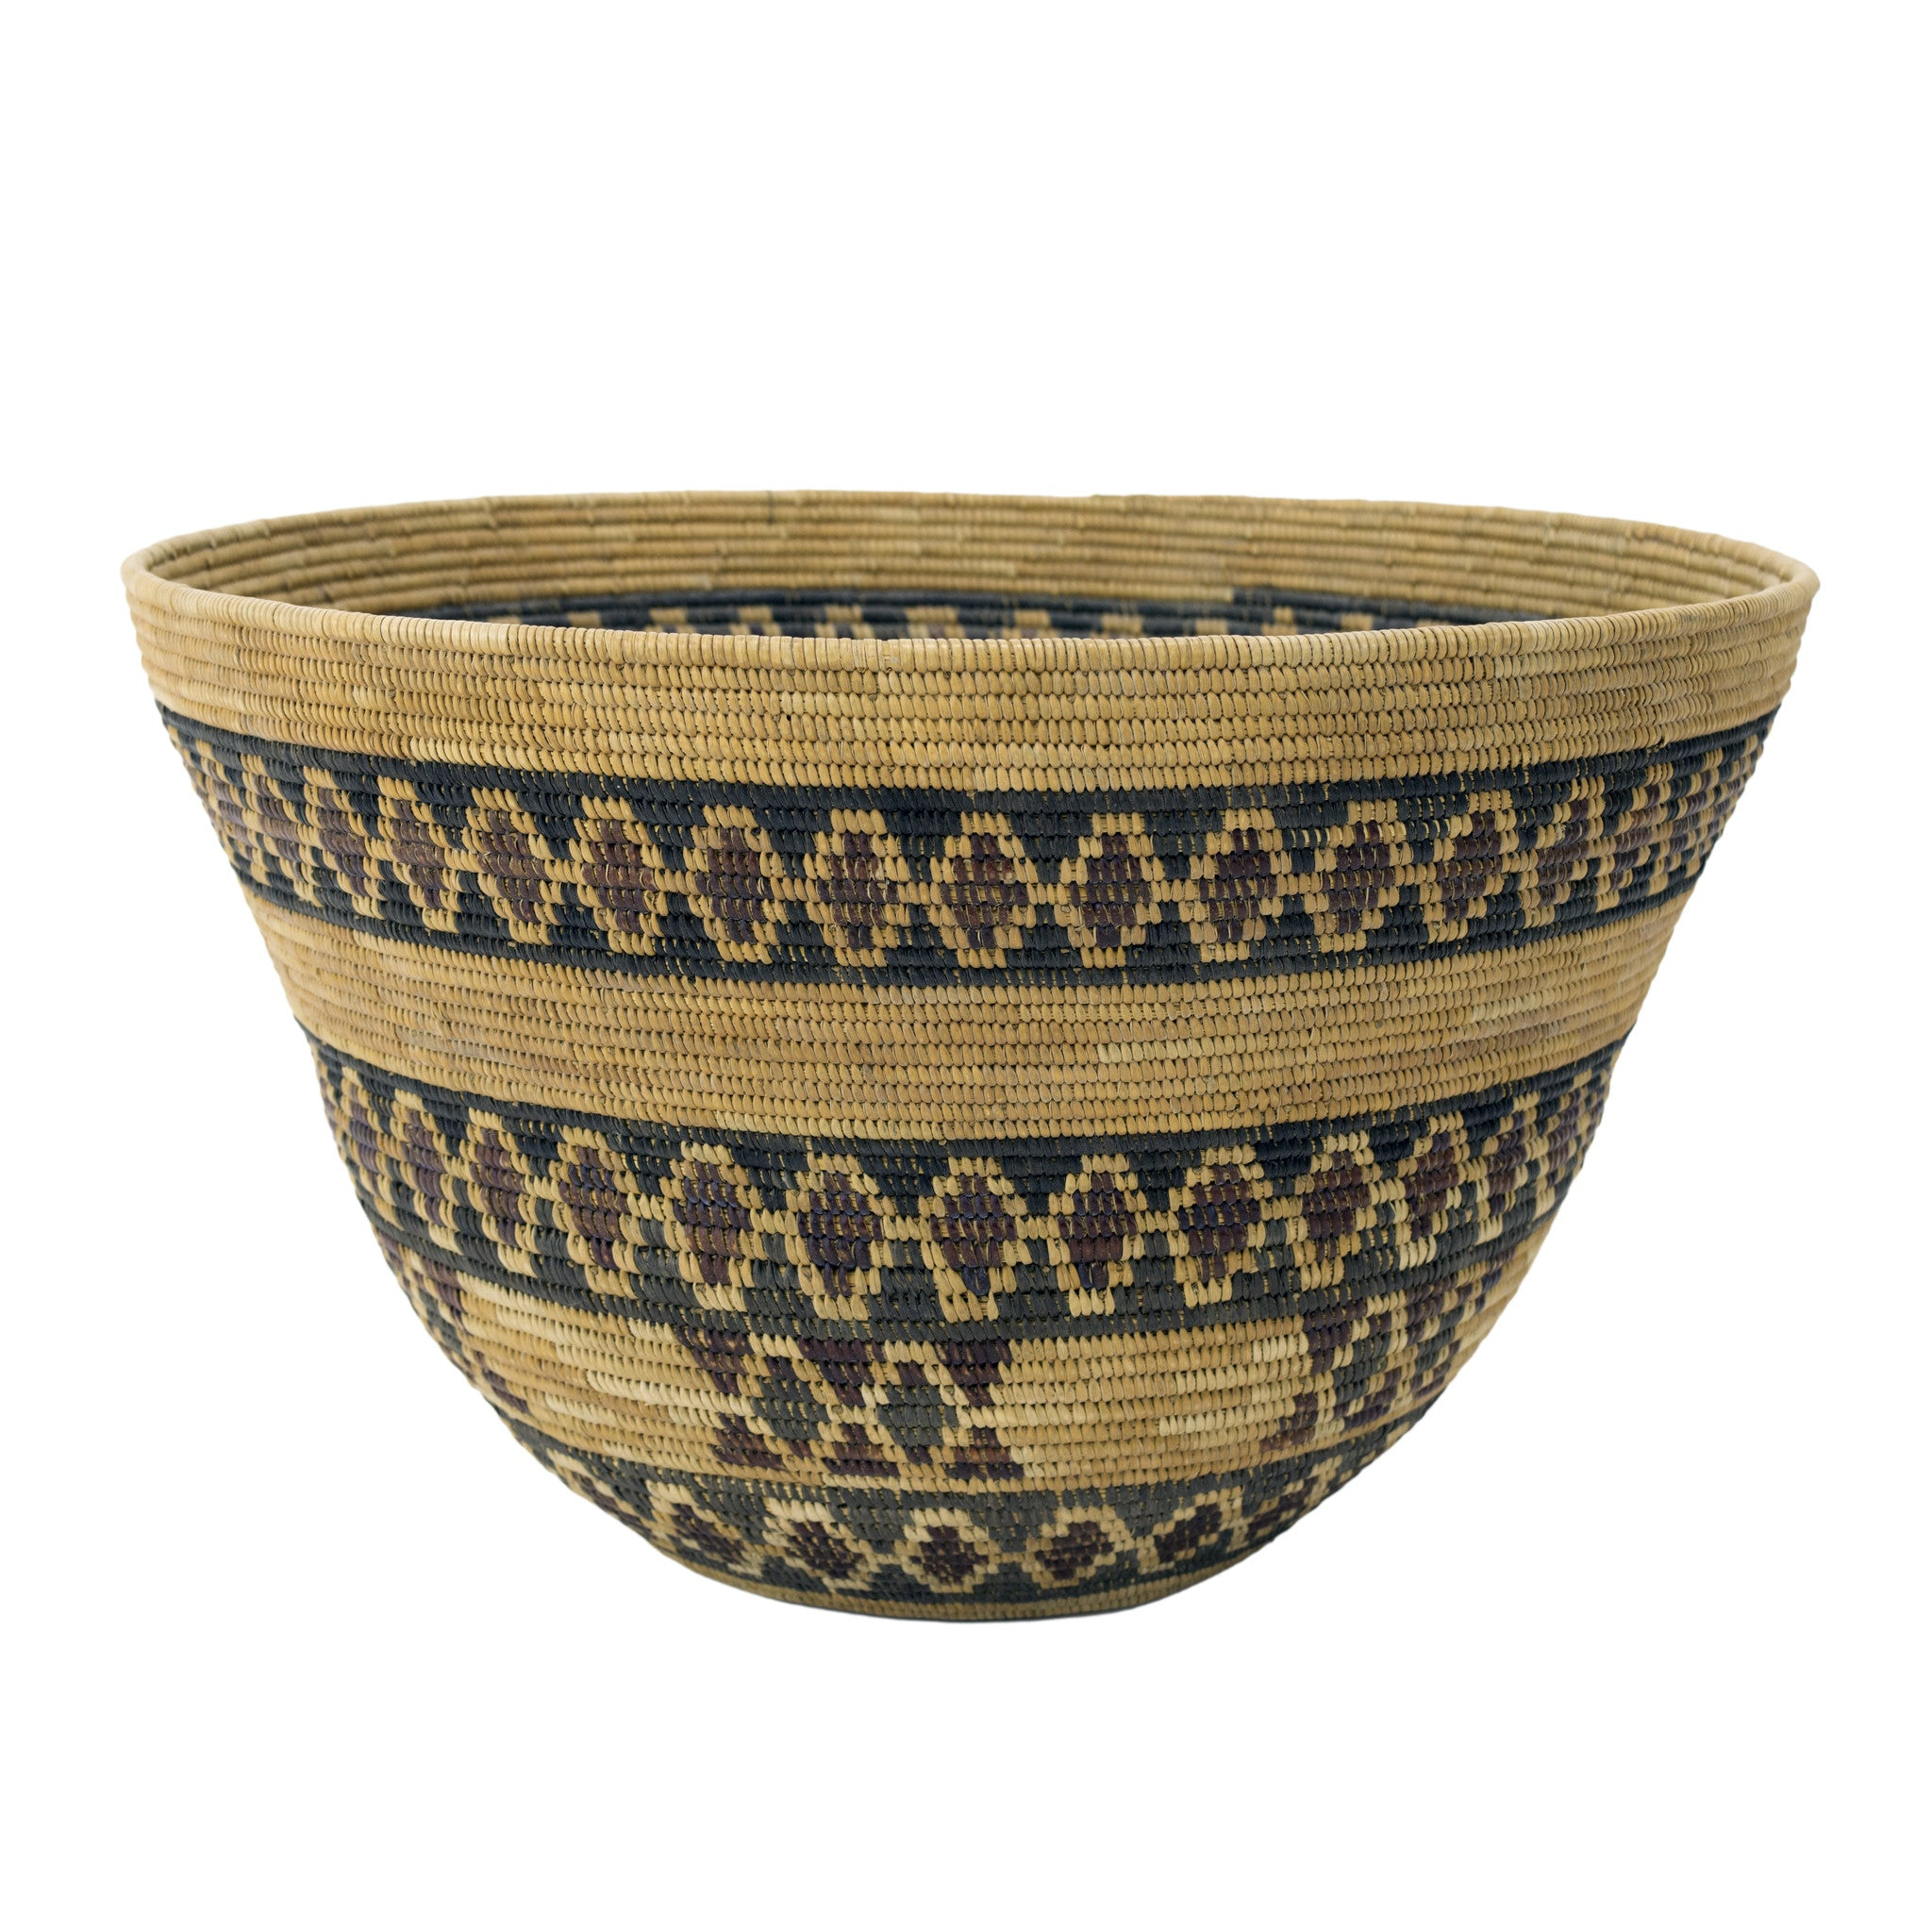 Yokut Basket With Diamond Pattern baskets, california, yokut